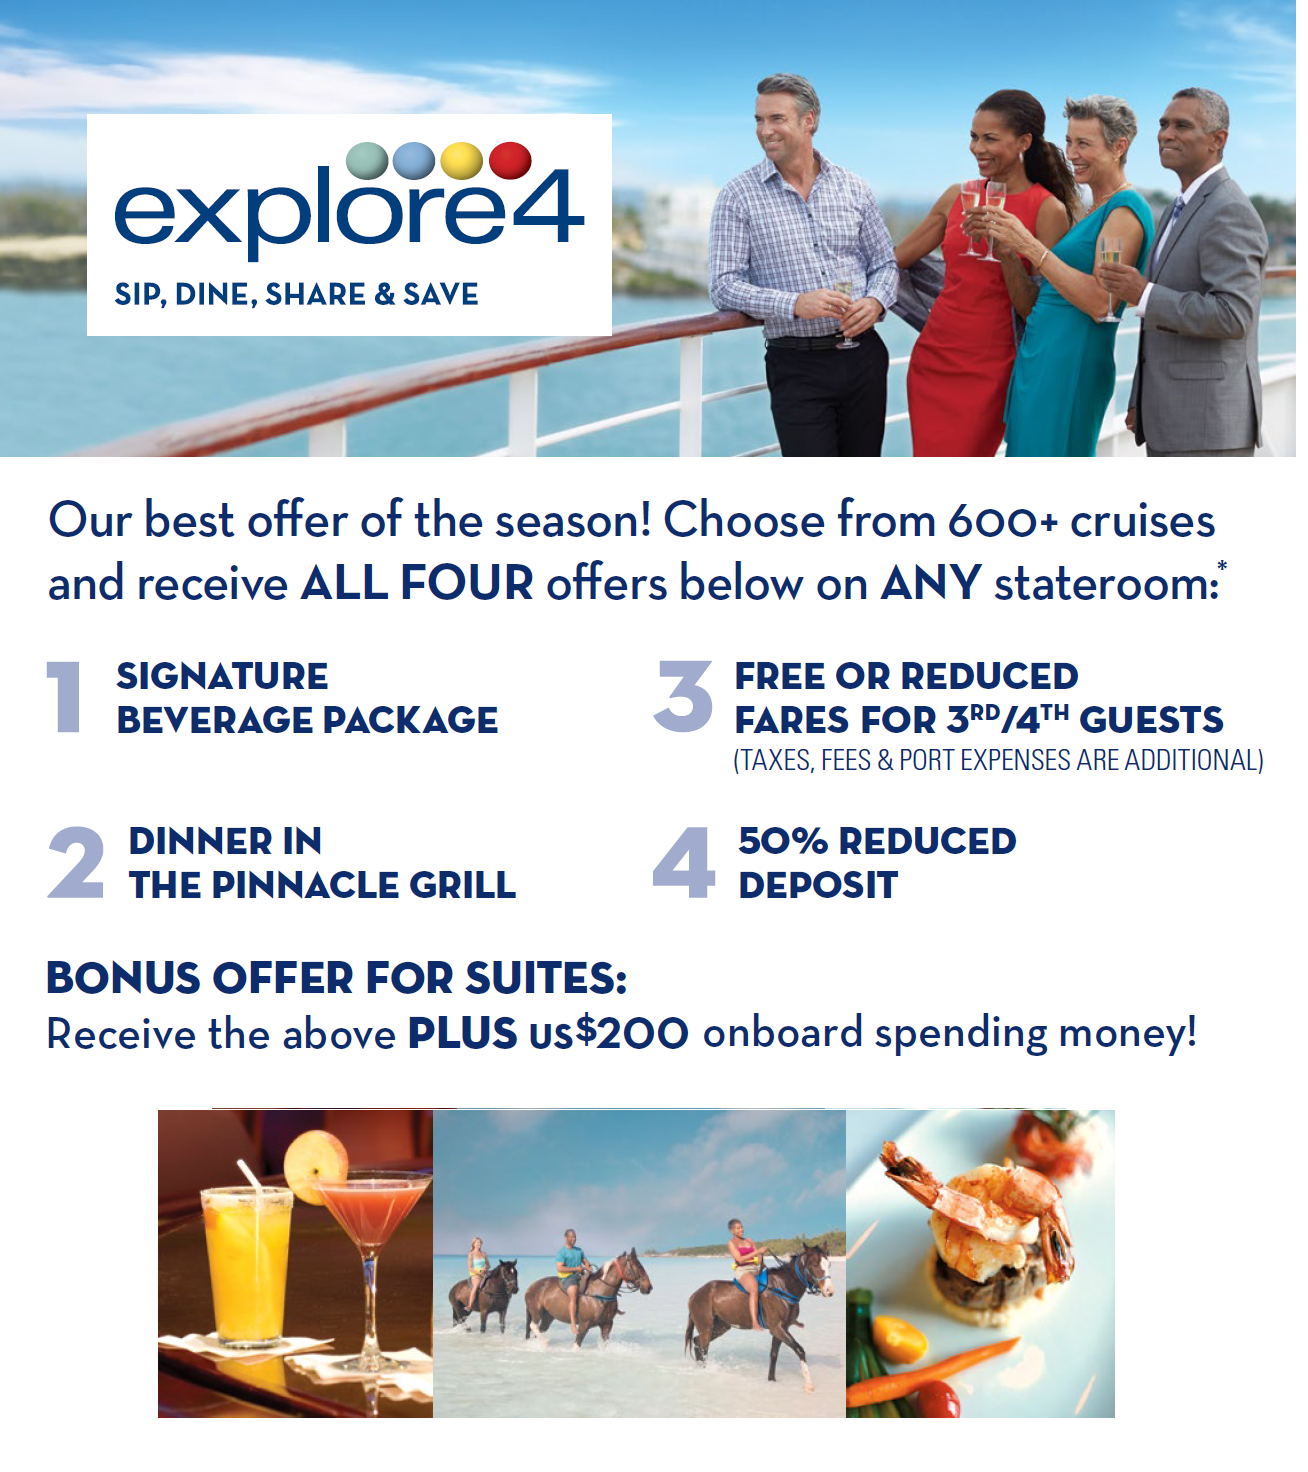 EXPLORE4 CRUISE OFFERS